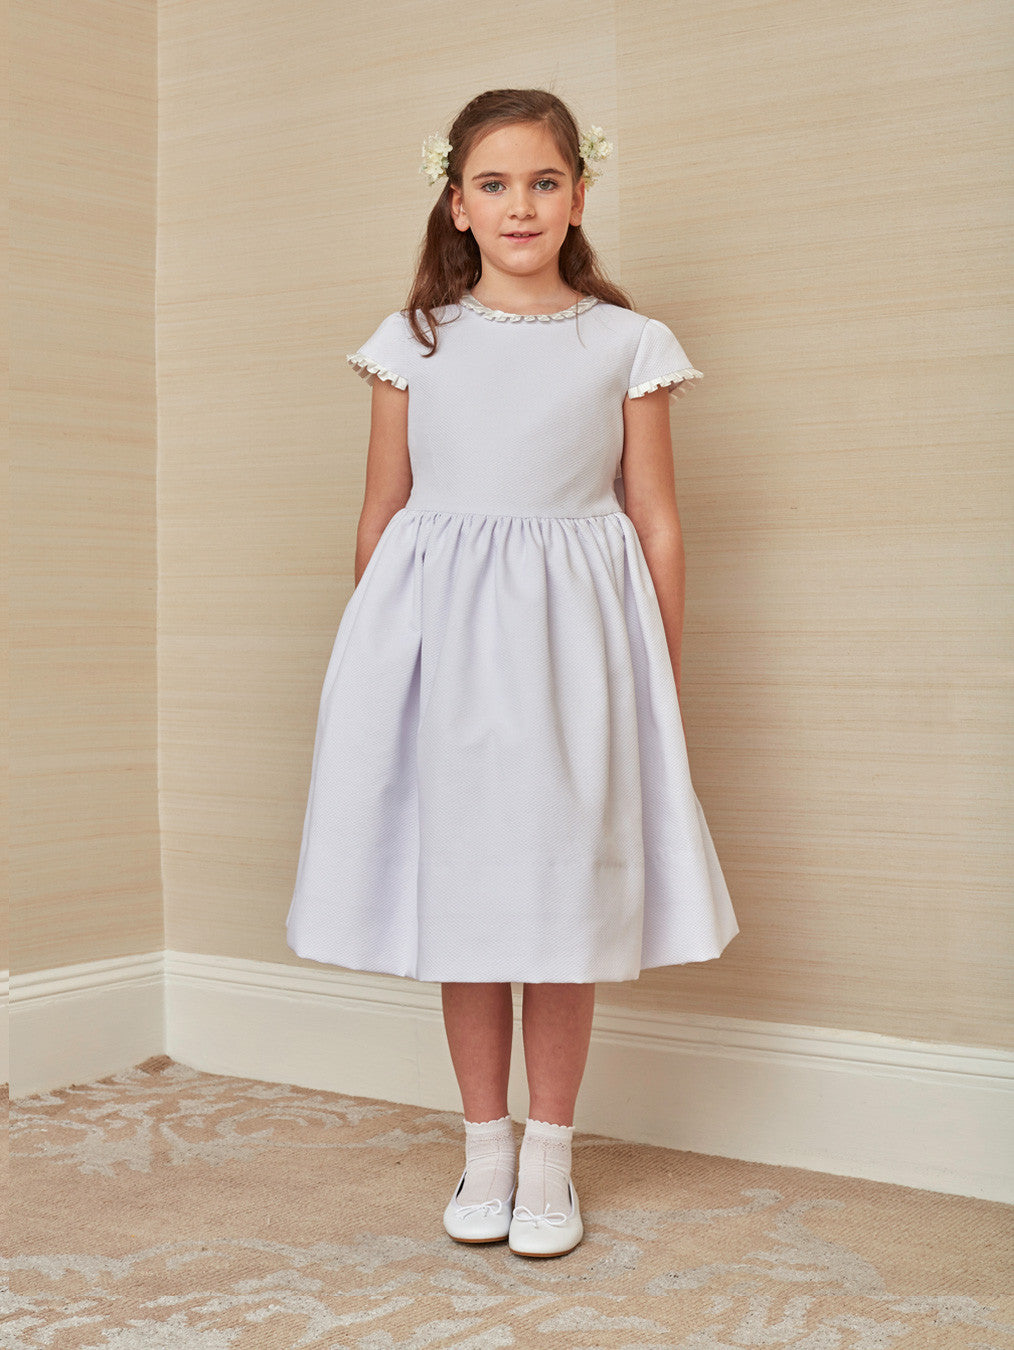 Classic First Communion Dress in White Cotton Pique